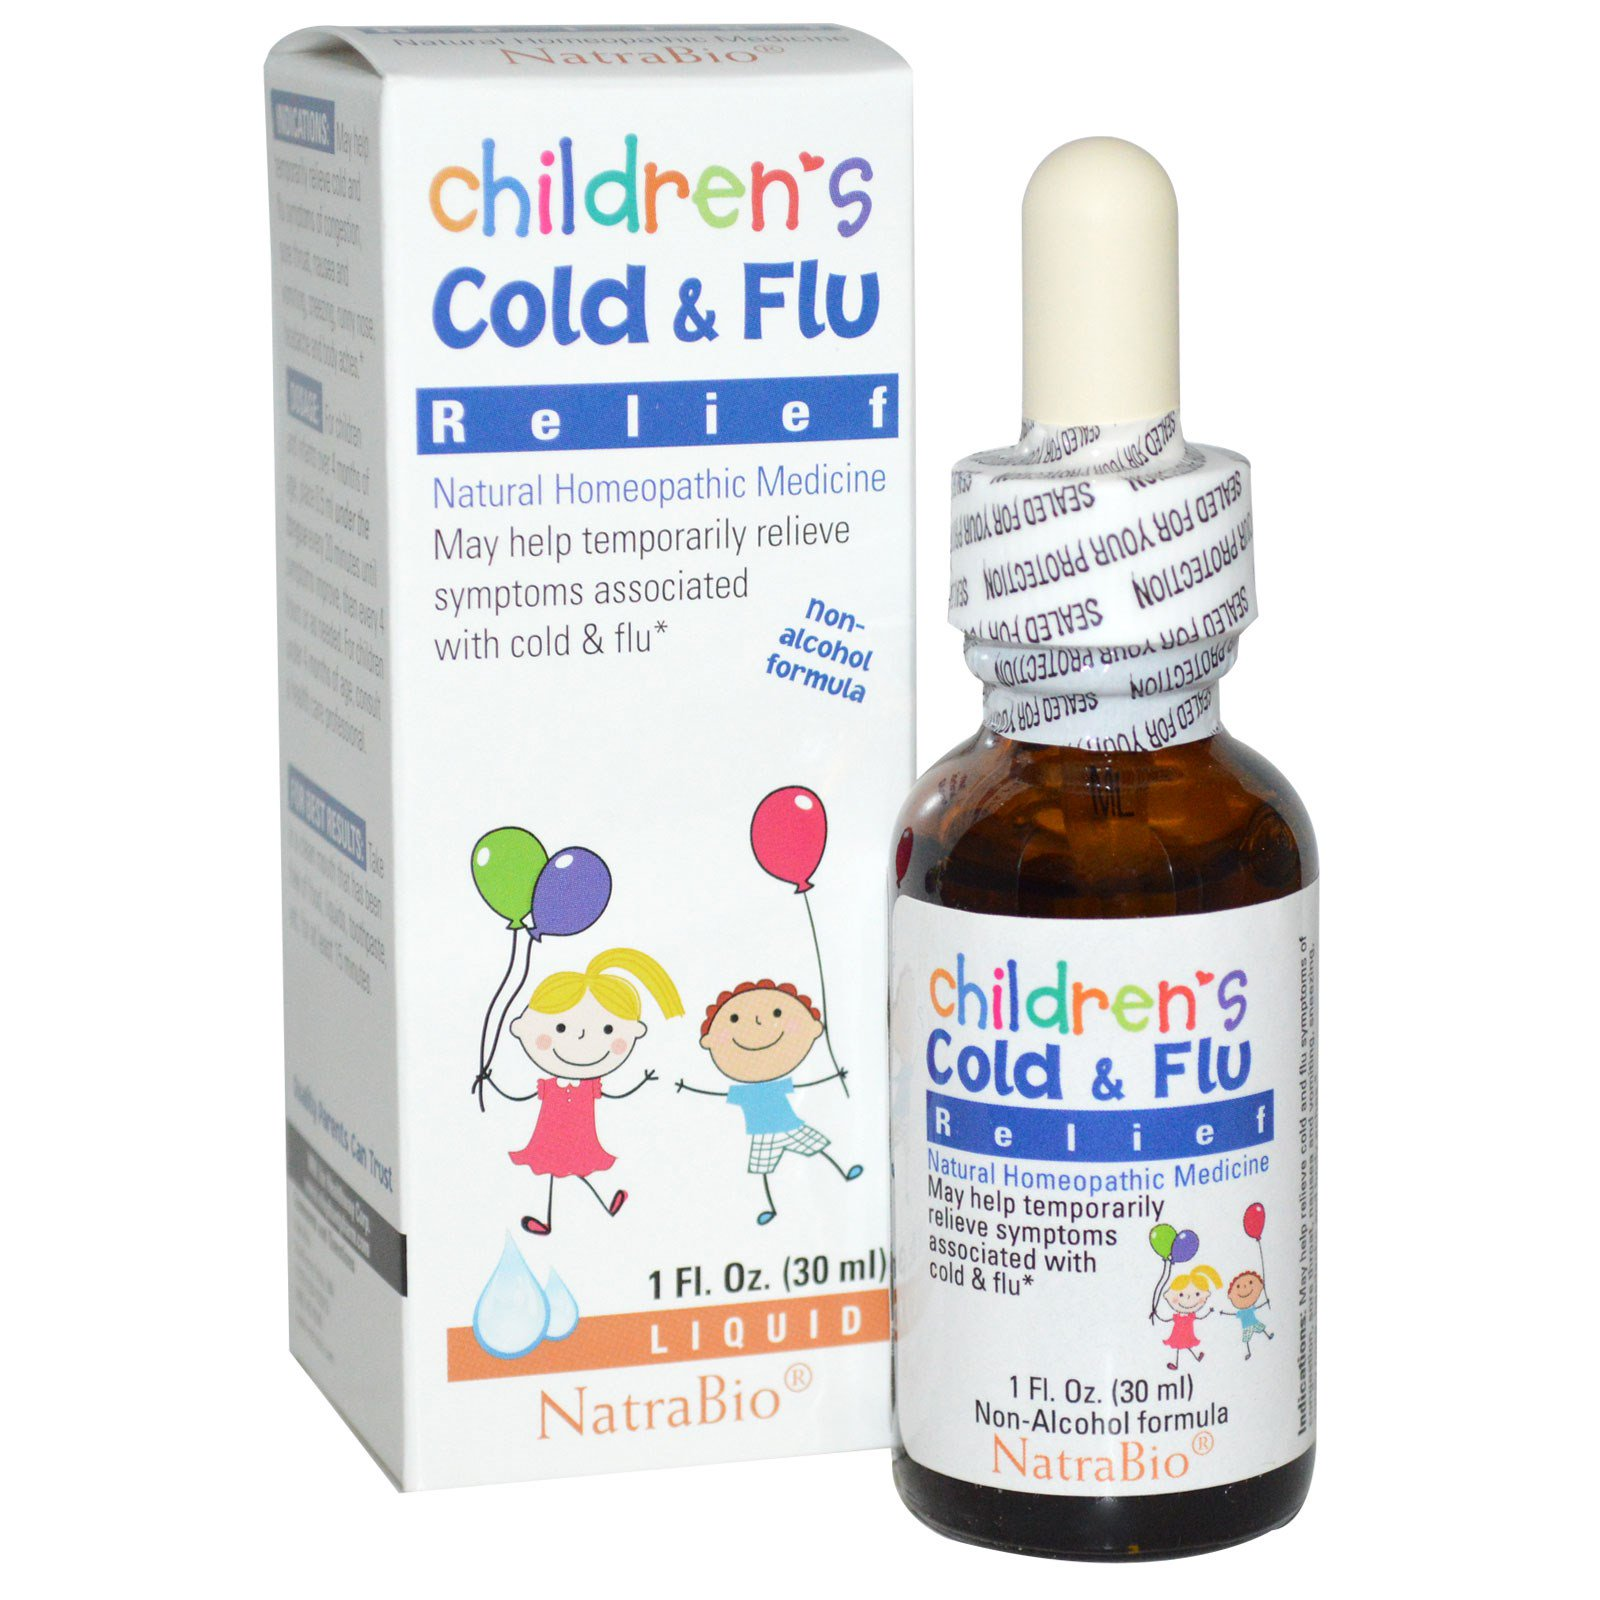 NatraBio Children s Cold & Flu Relief 1 fl oz 30 ml iHerb